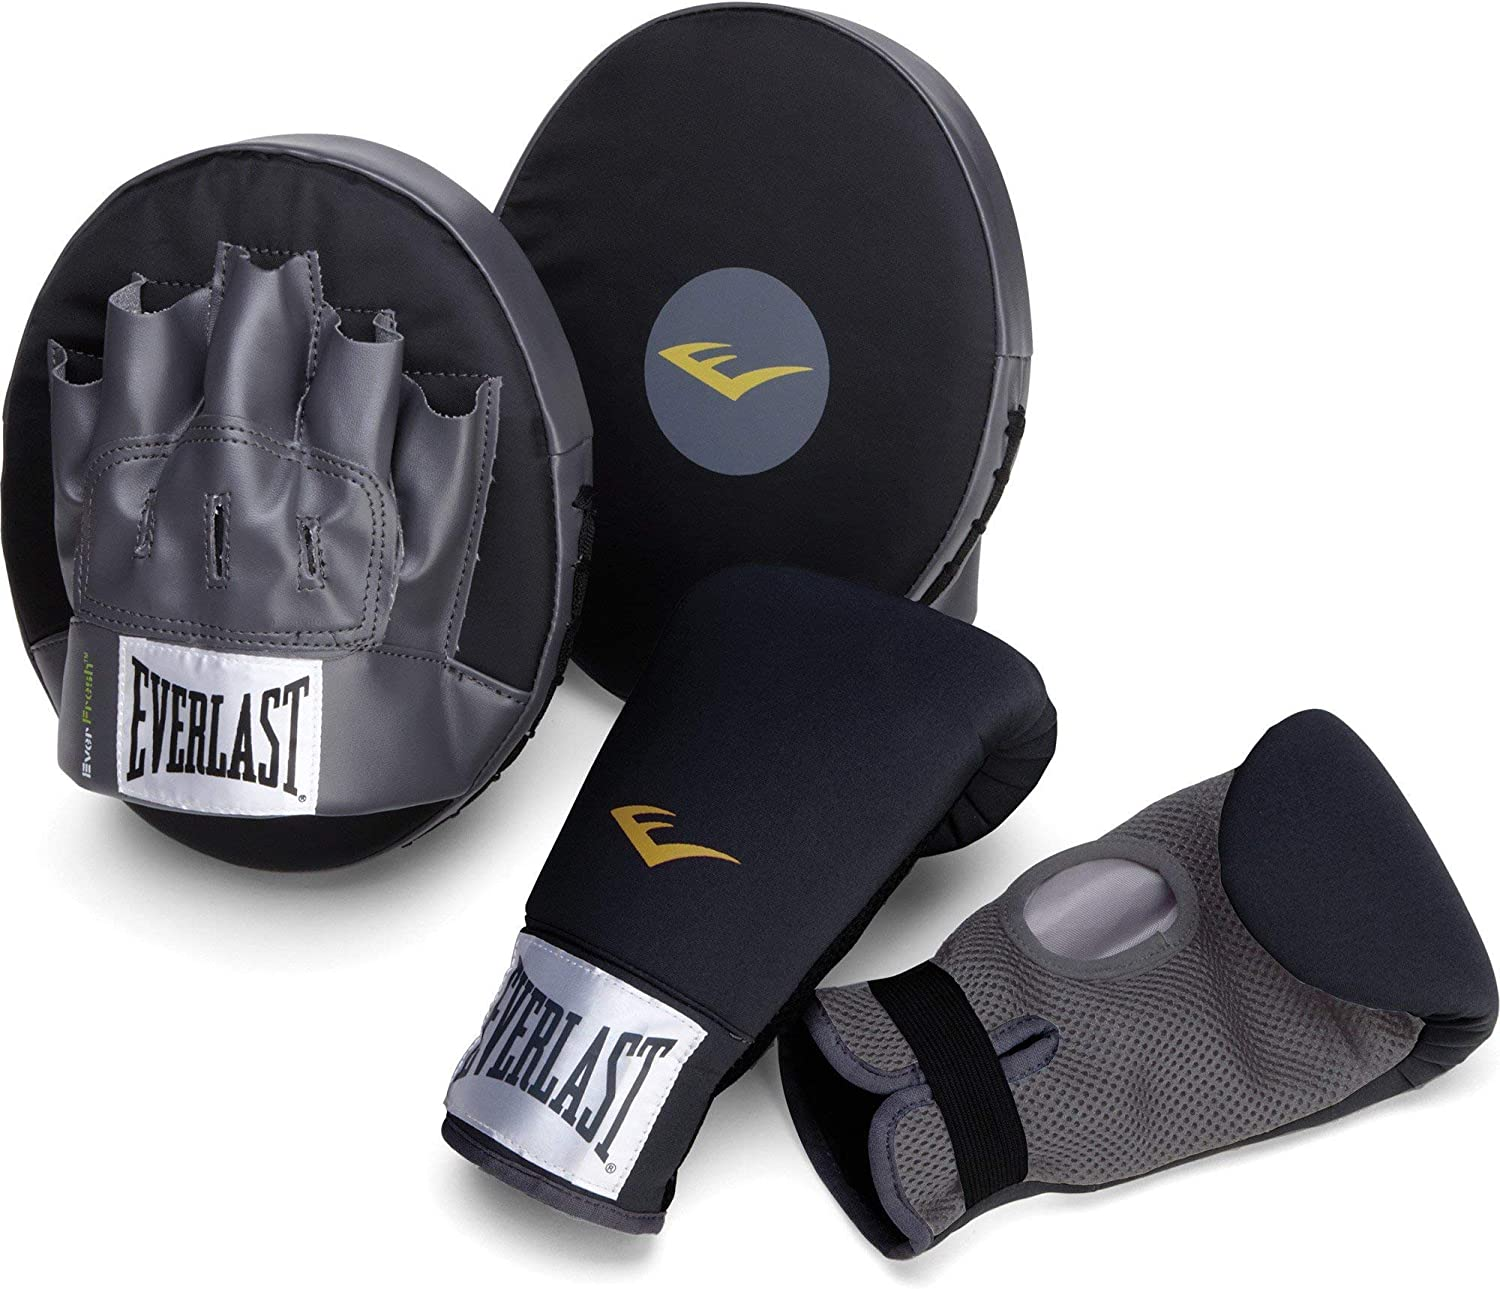 Everlast Boxing Fitness Kit, Black/Grey : Boxing And Martial Arts Protective Gear : Clothing